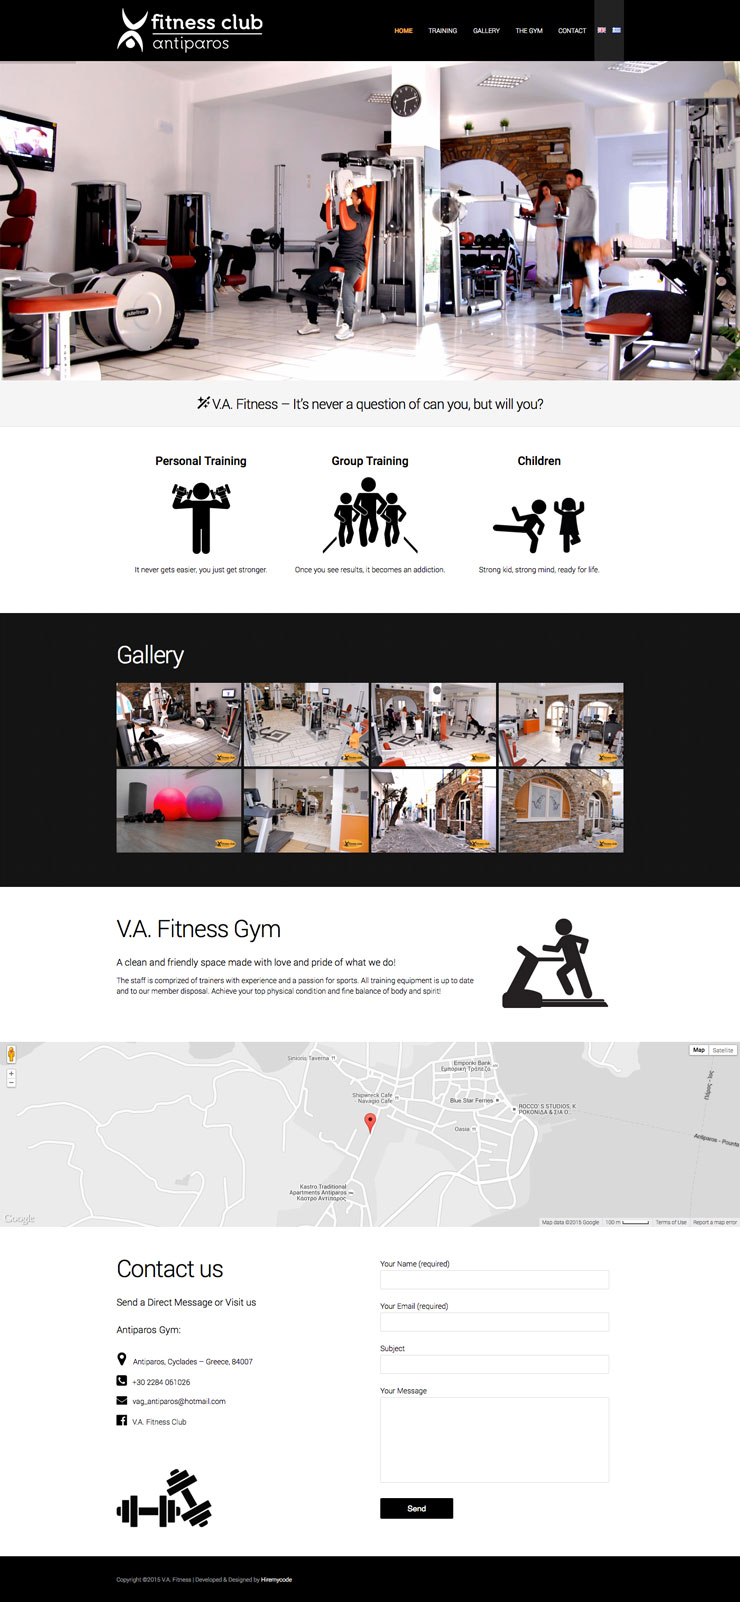 VA Fitness Club Antiparos